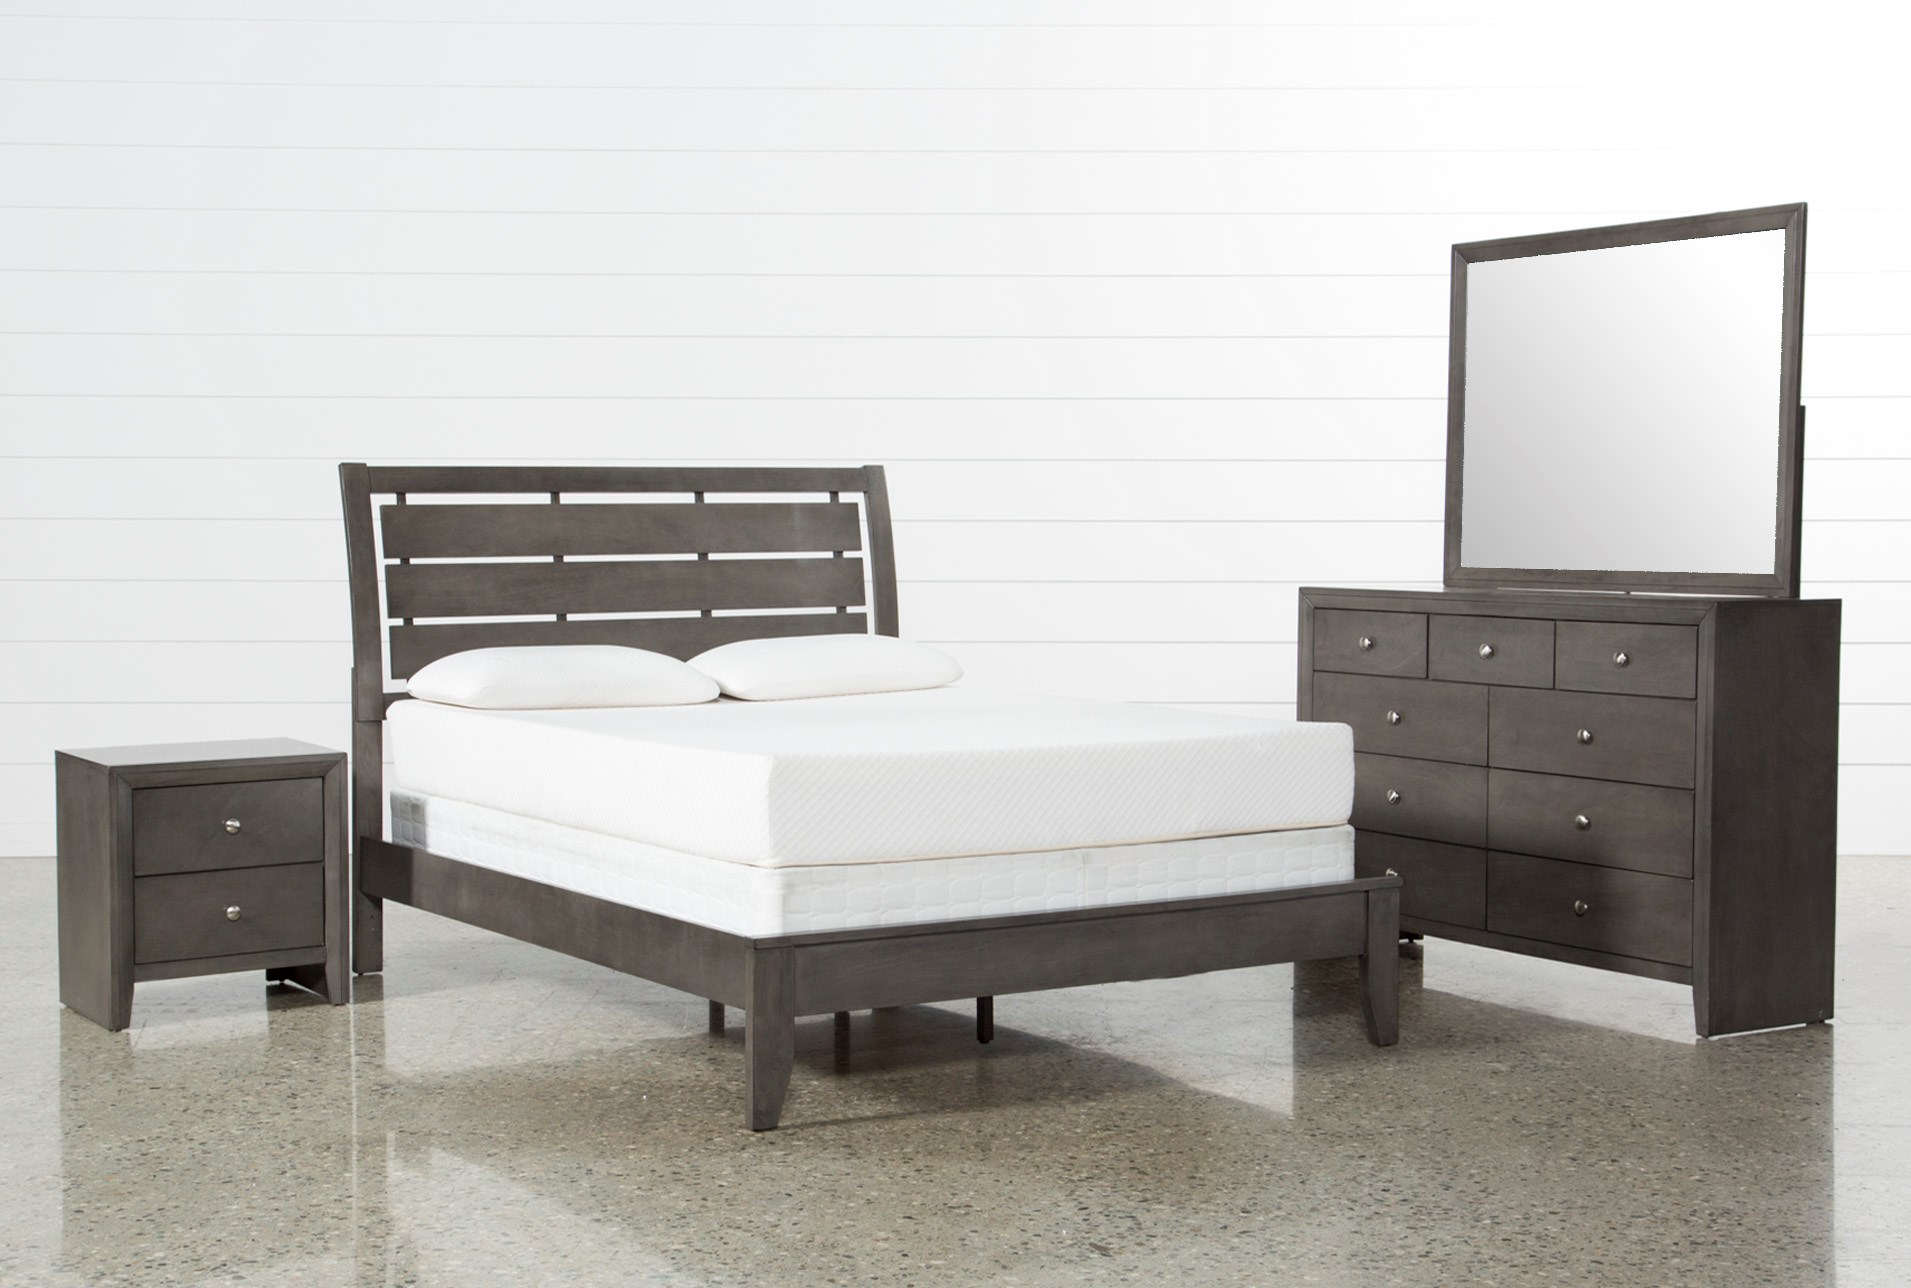 chad grey cal king 4 piece bedroom set living spaces 14687 | 230661 0 w 1911 h 1288 mode pad